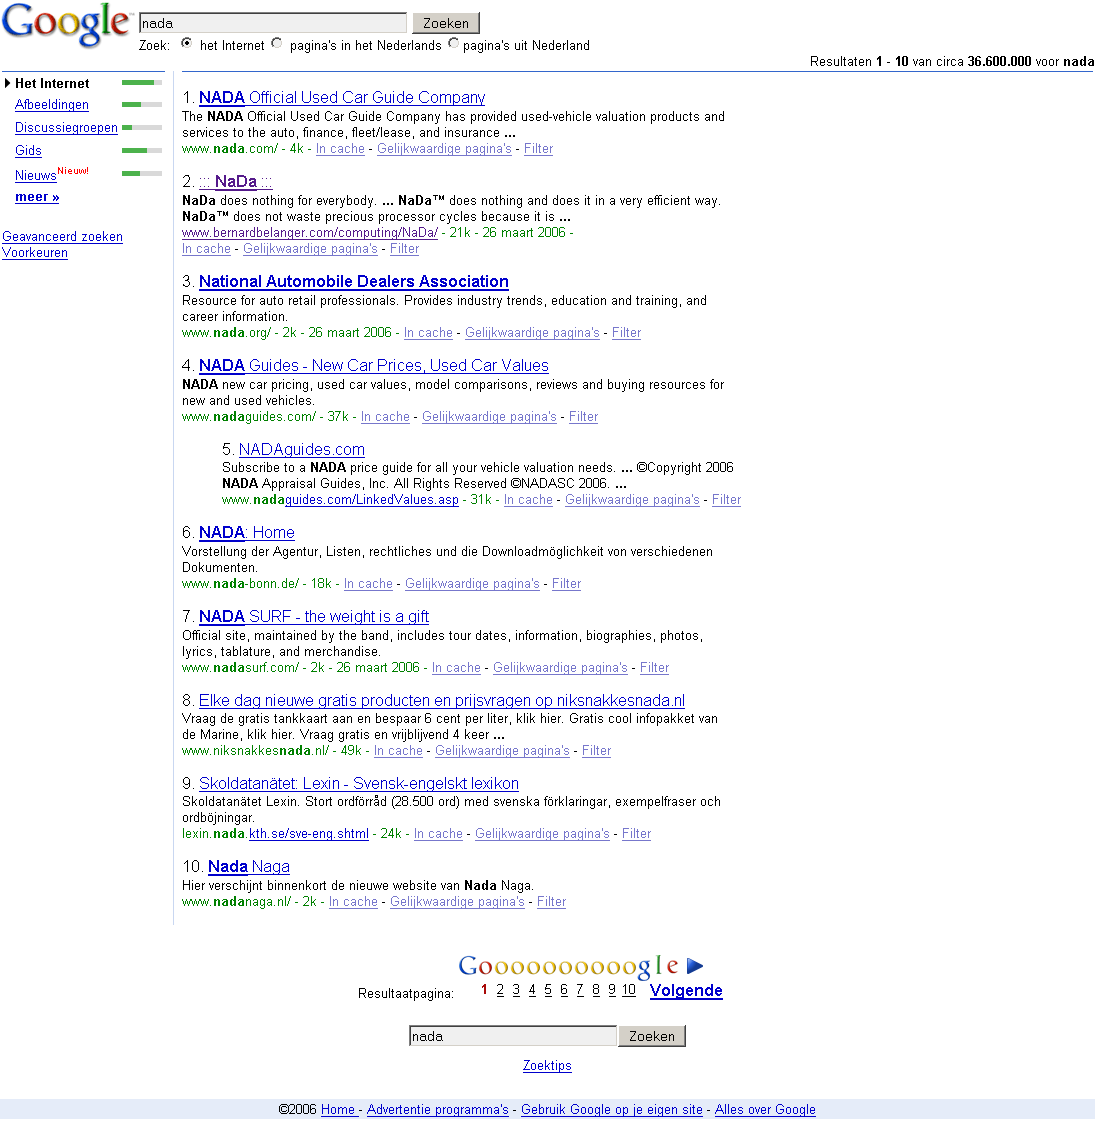 preview of the new Google Results page, click image to open it in a new window.